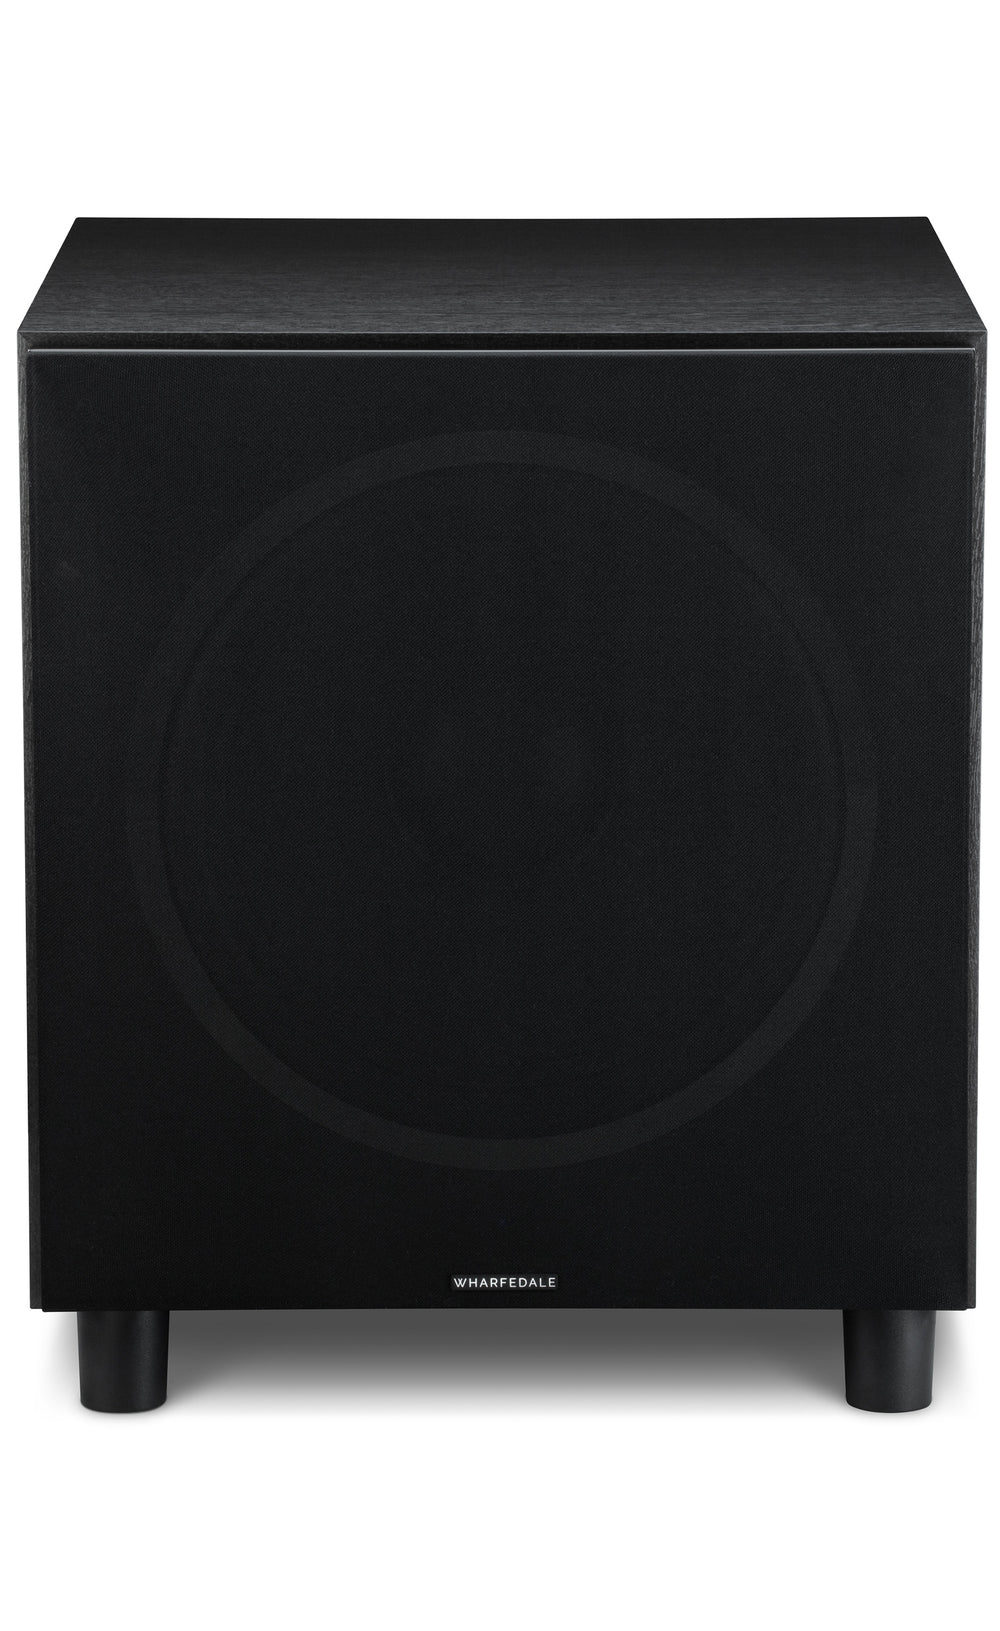 SW-15 400W Subwoofer